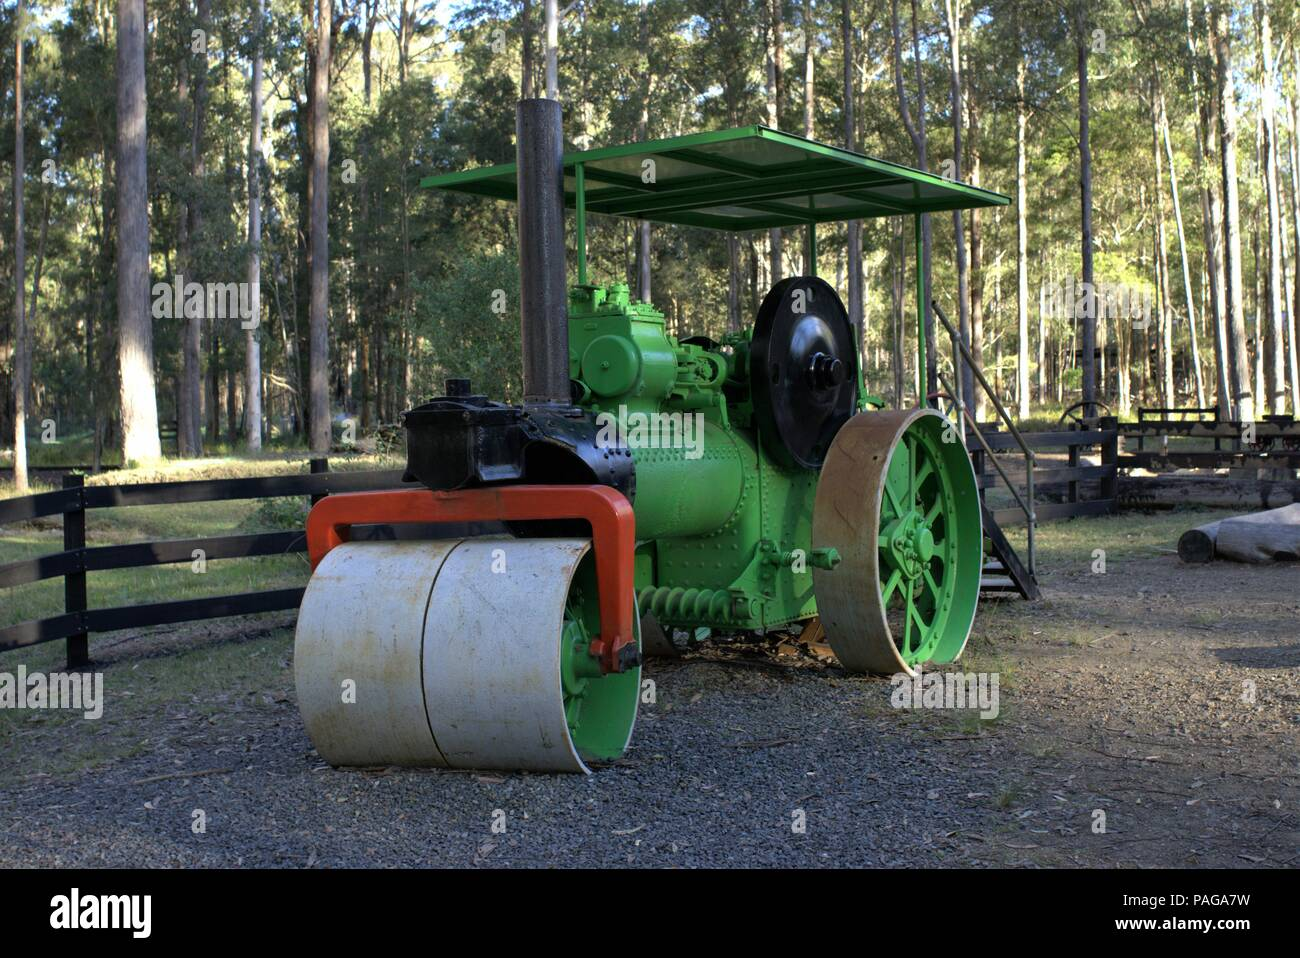 Roller Australia Vintage Road Roller At Timbertown Wauchope In Australia As On 9